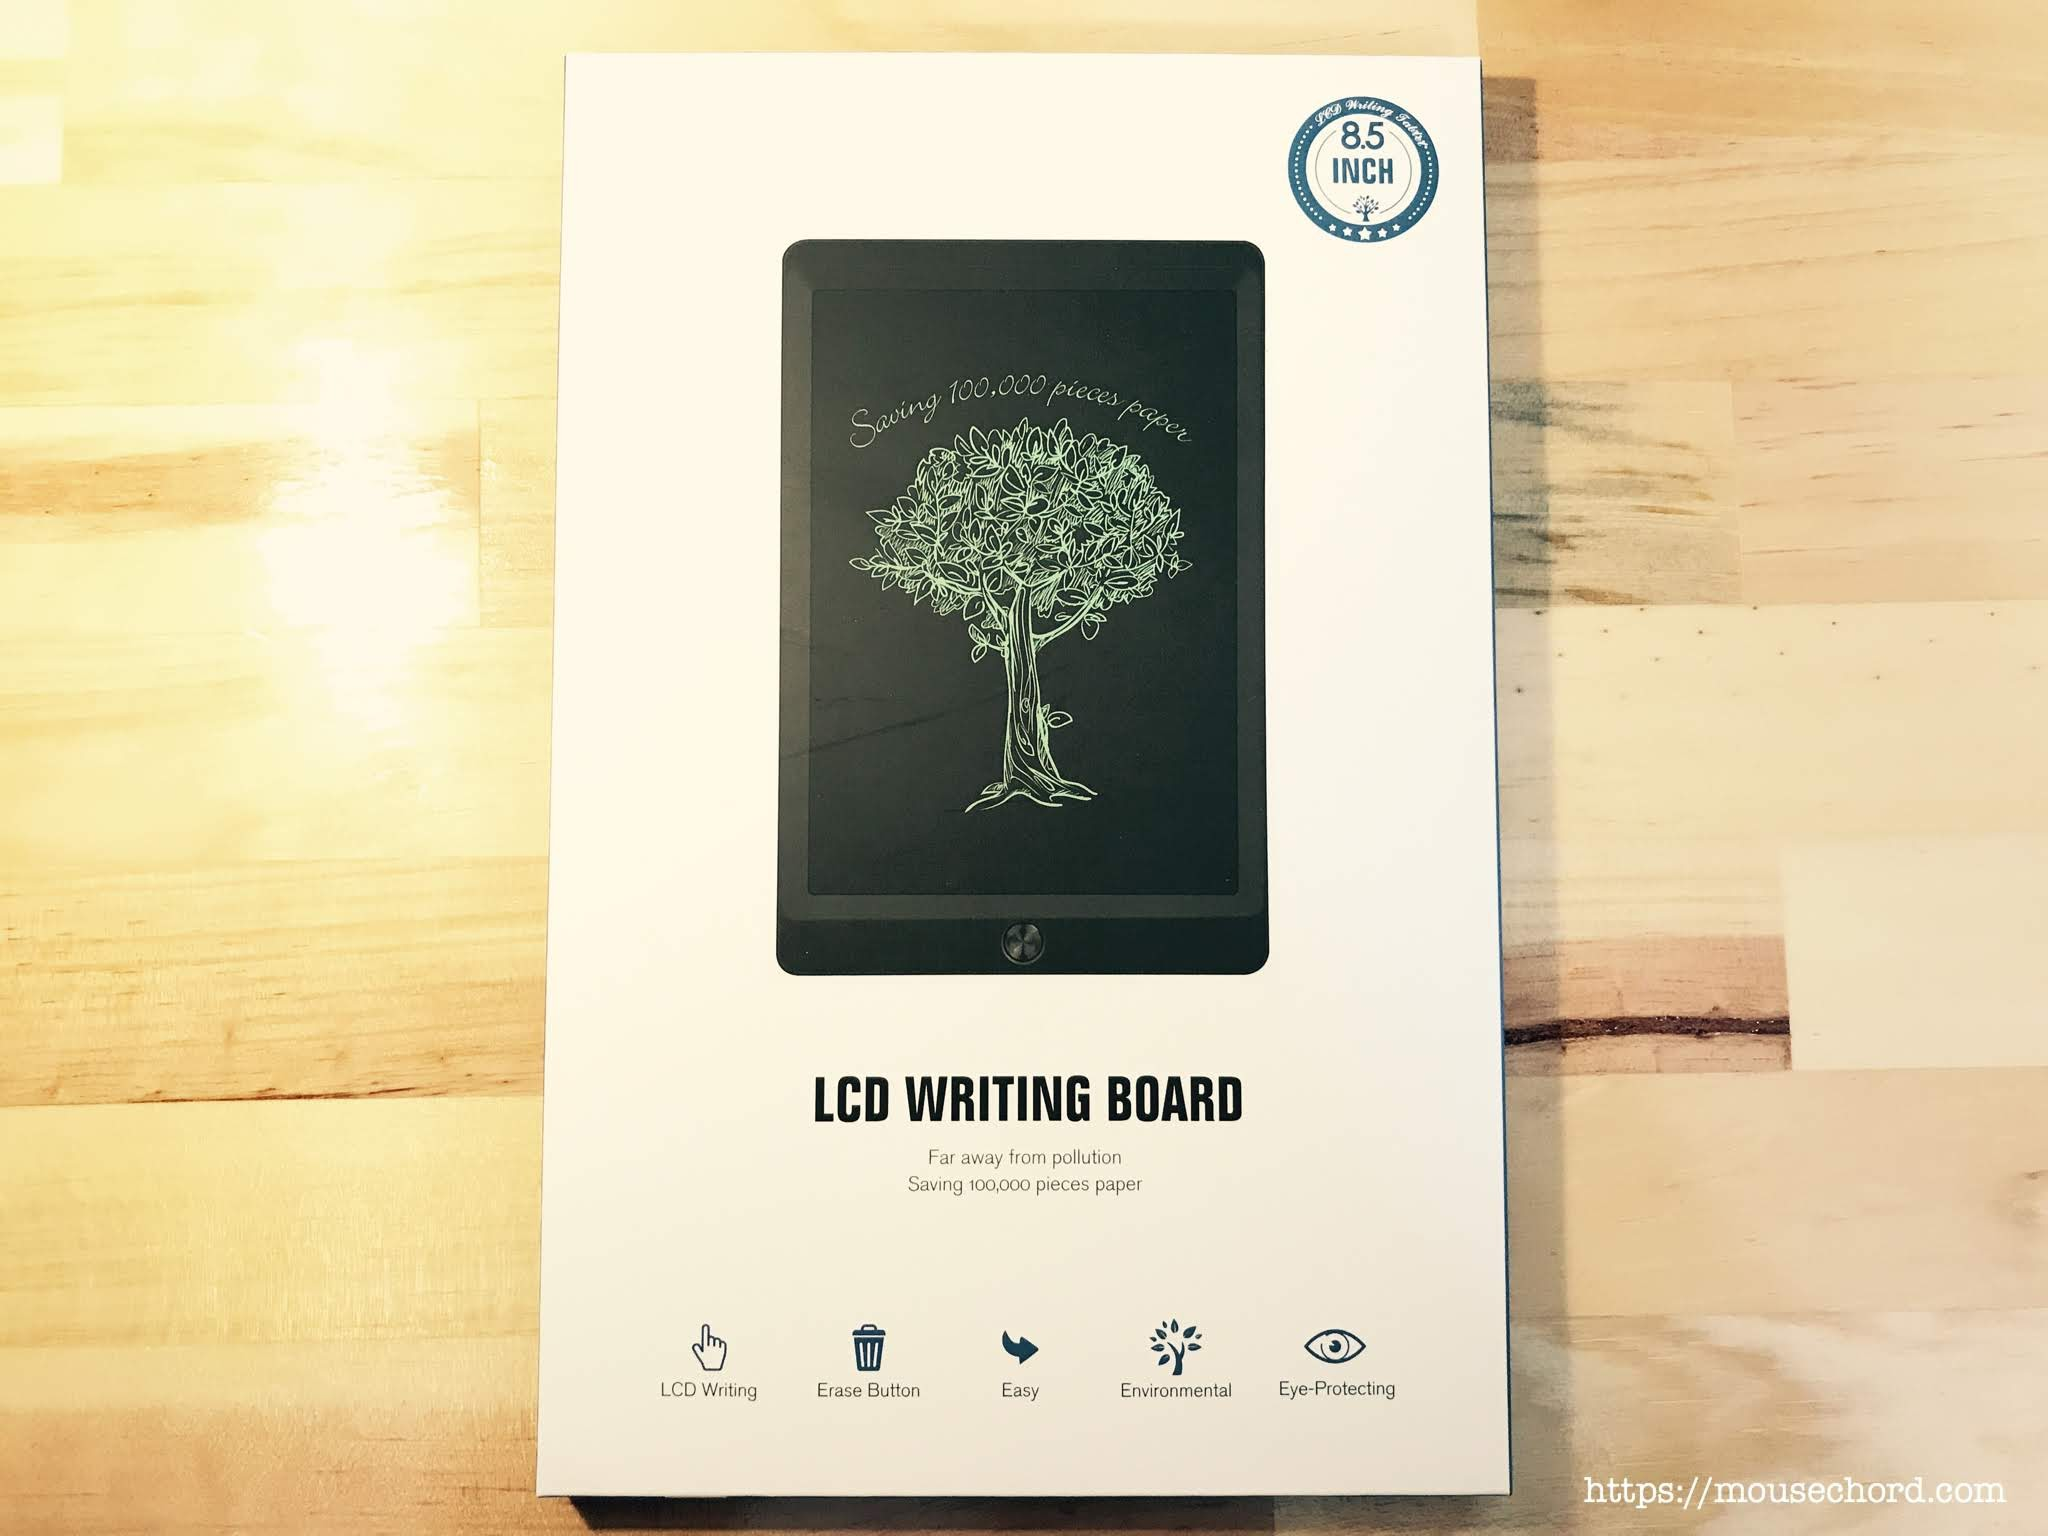 LCD WRITING BOARD 電子メモパッド購入Review